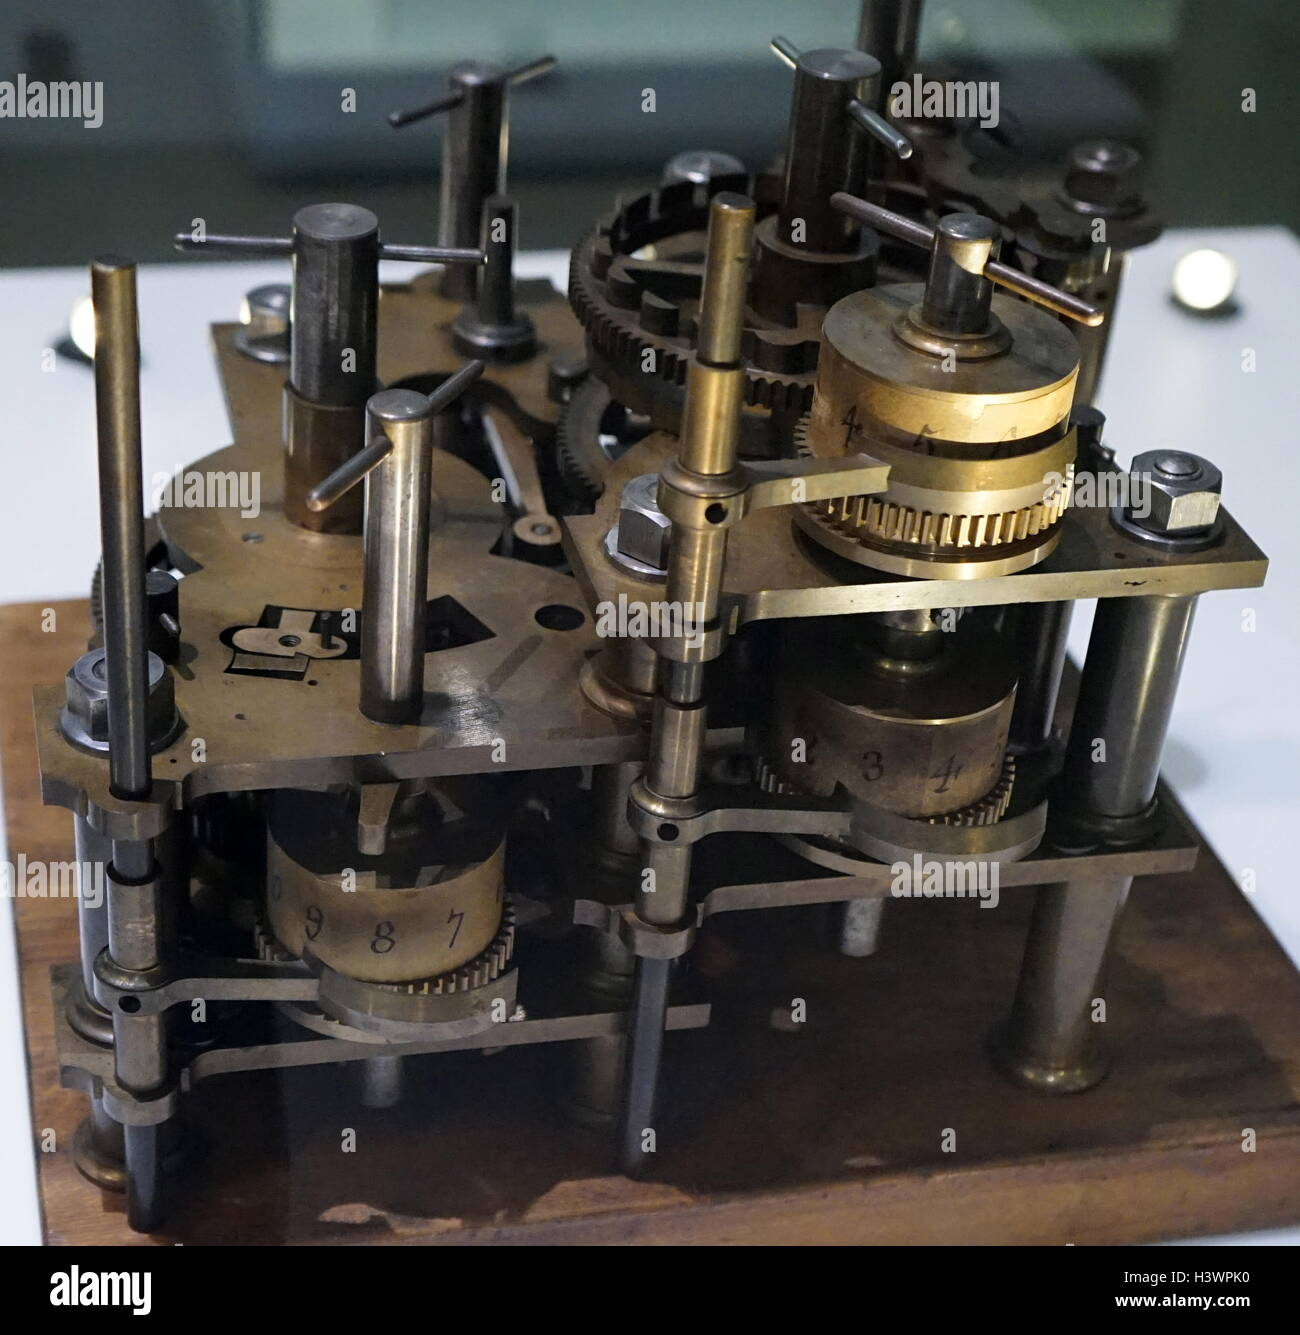 Difference engine designed by Charles Babbage - Stock Image